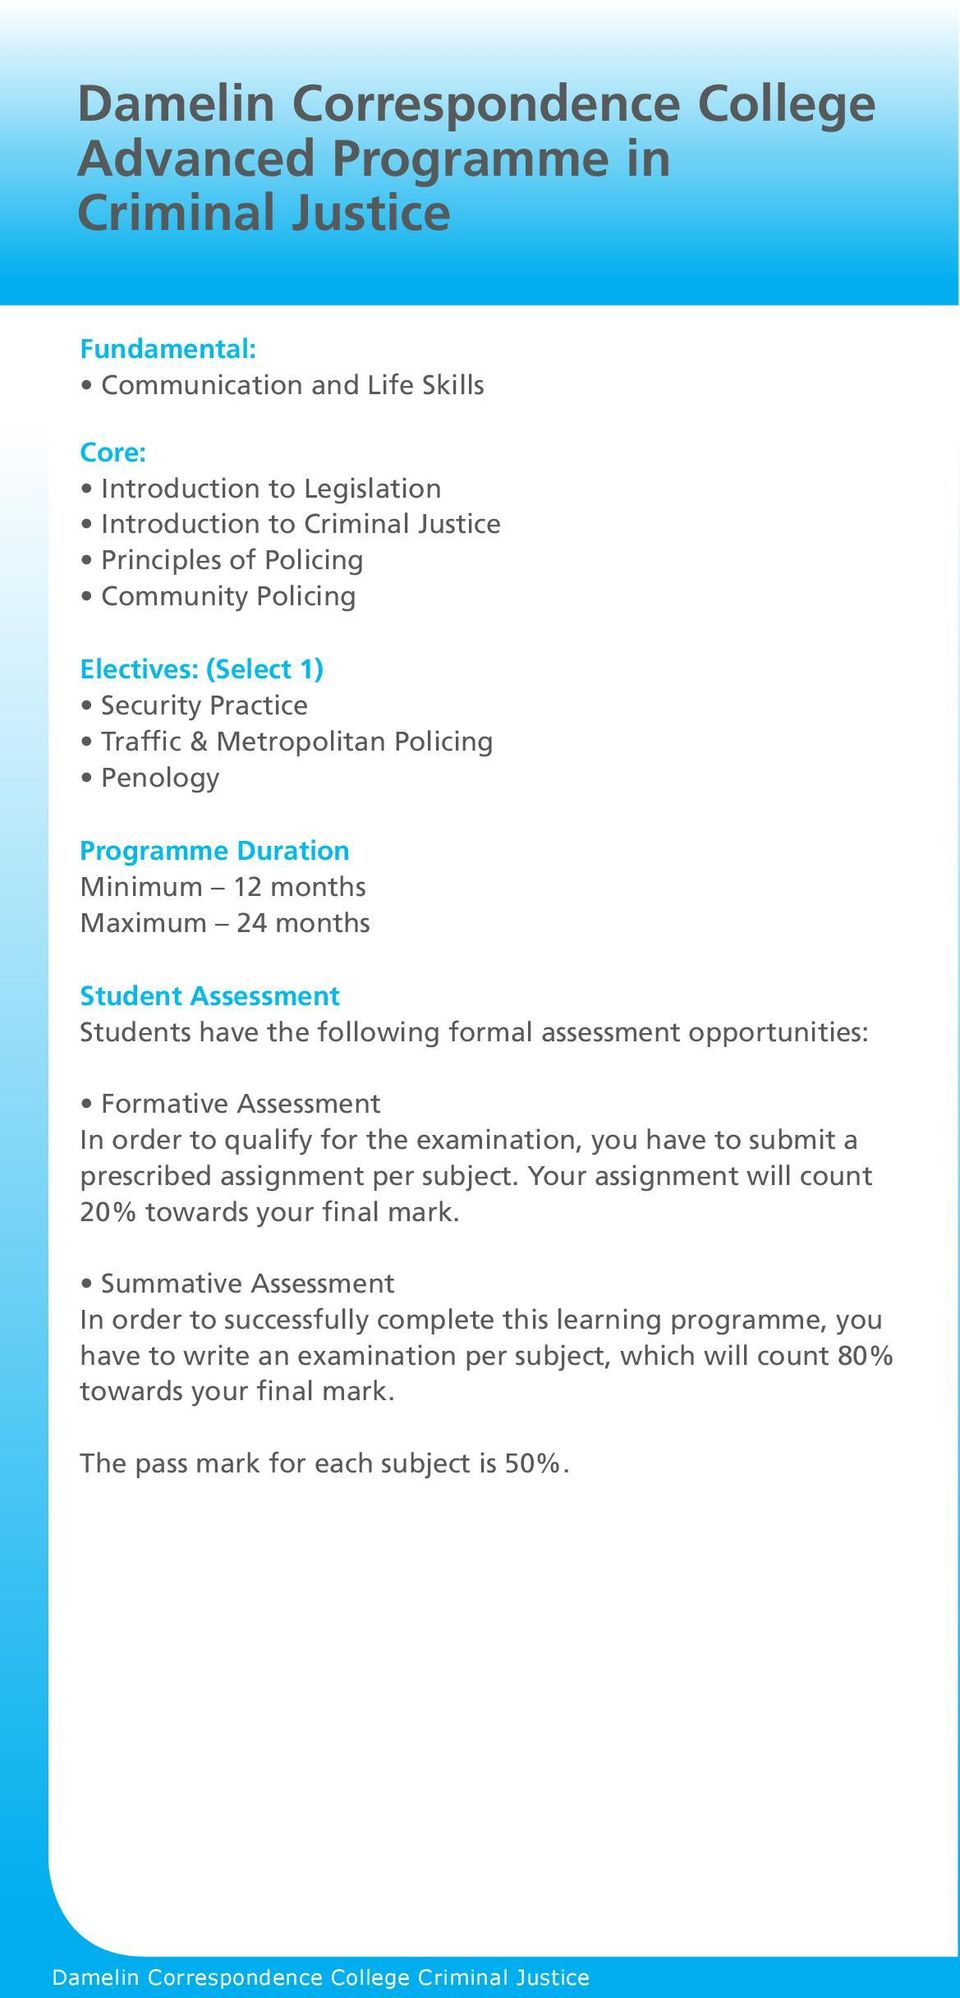 the following formal assessment opportunities: Formative Assessment In order to qualify for the examination, you have to submit a prescribed assignment per subject.